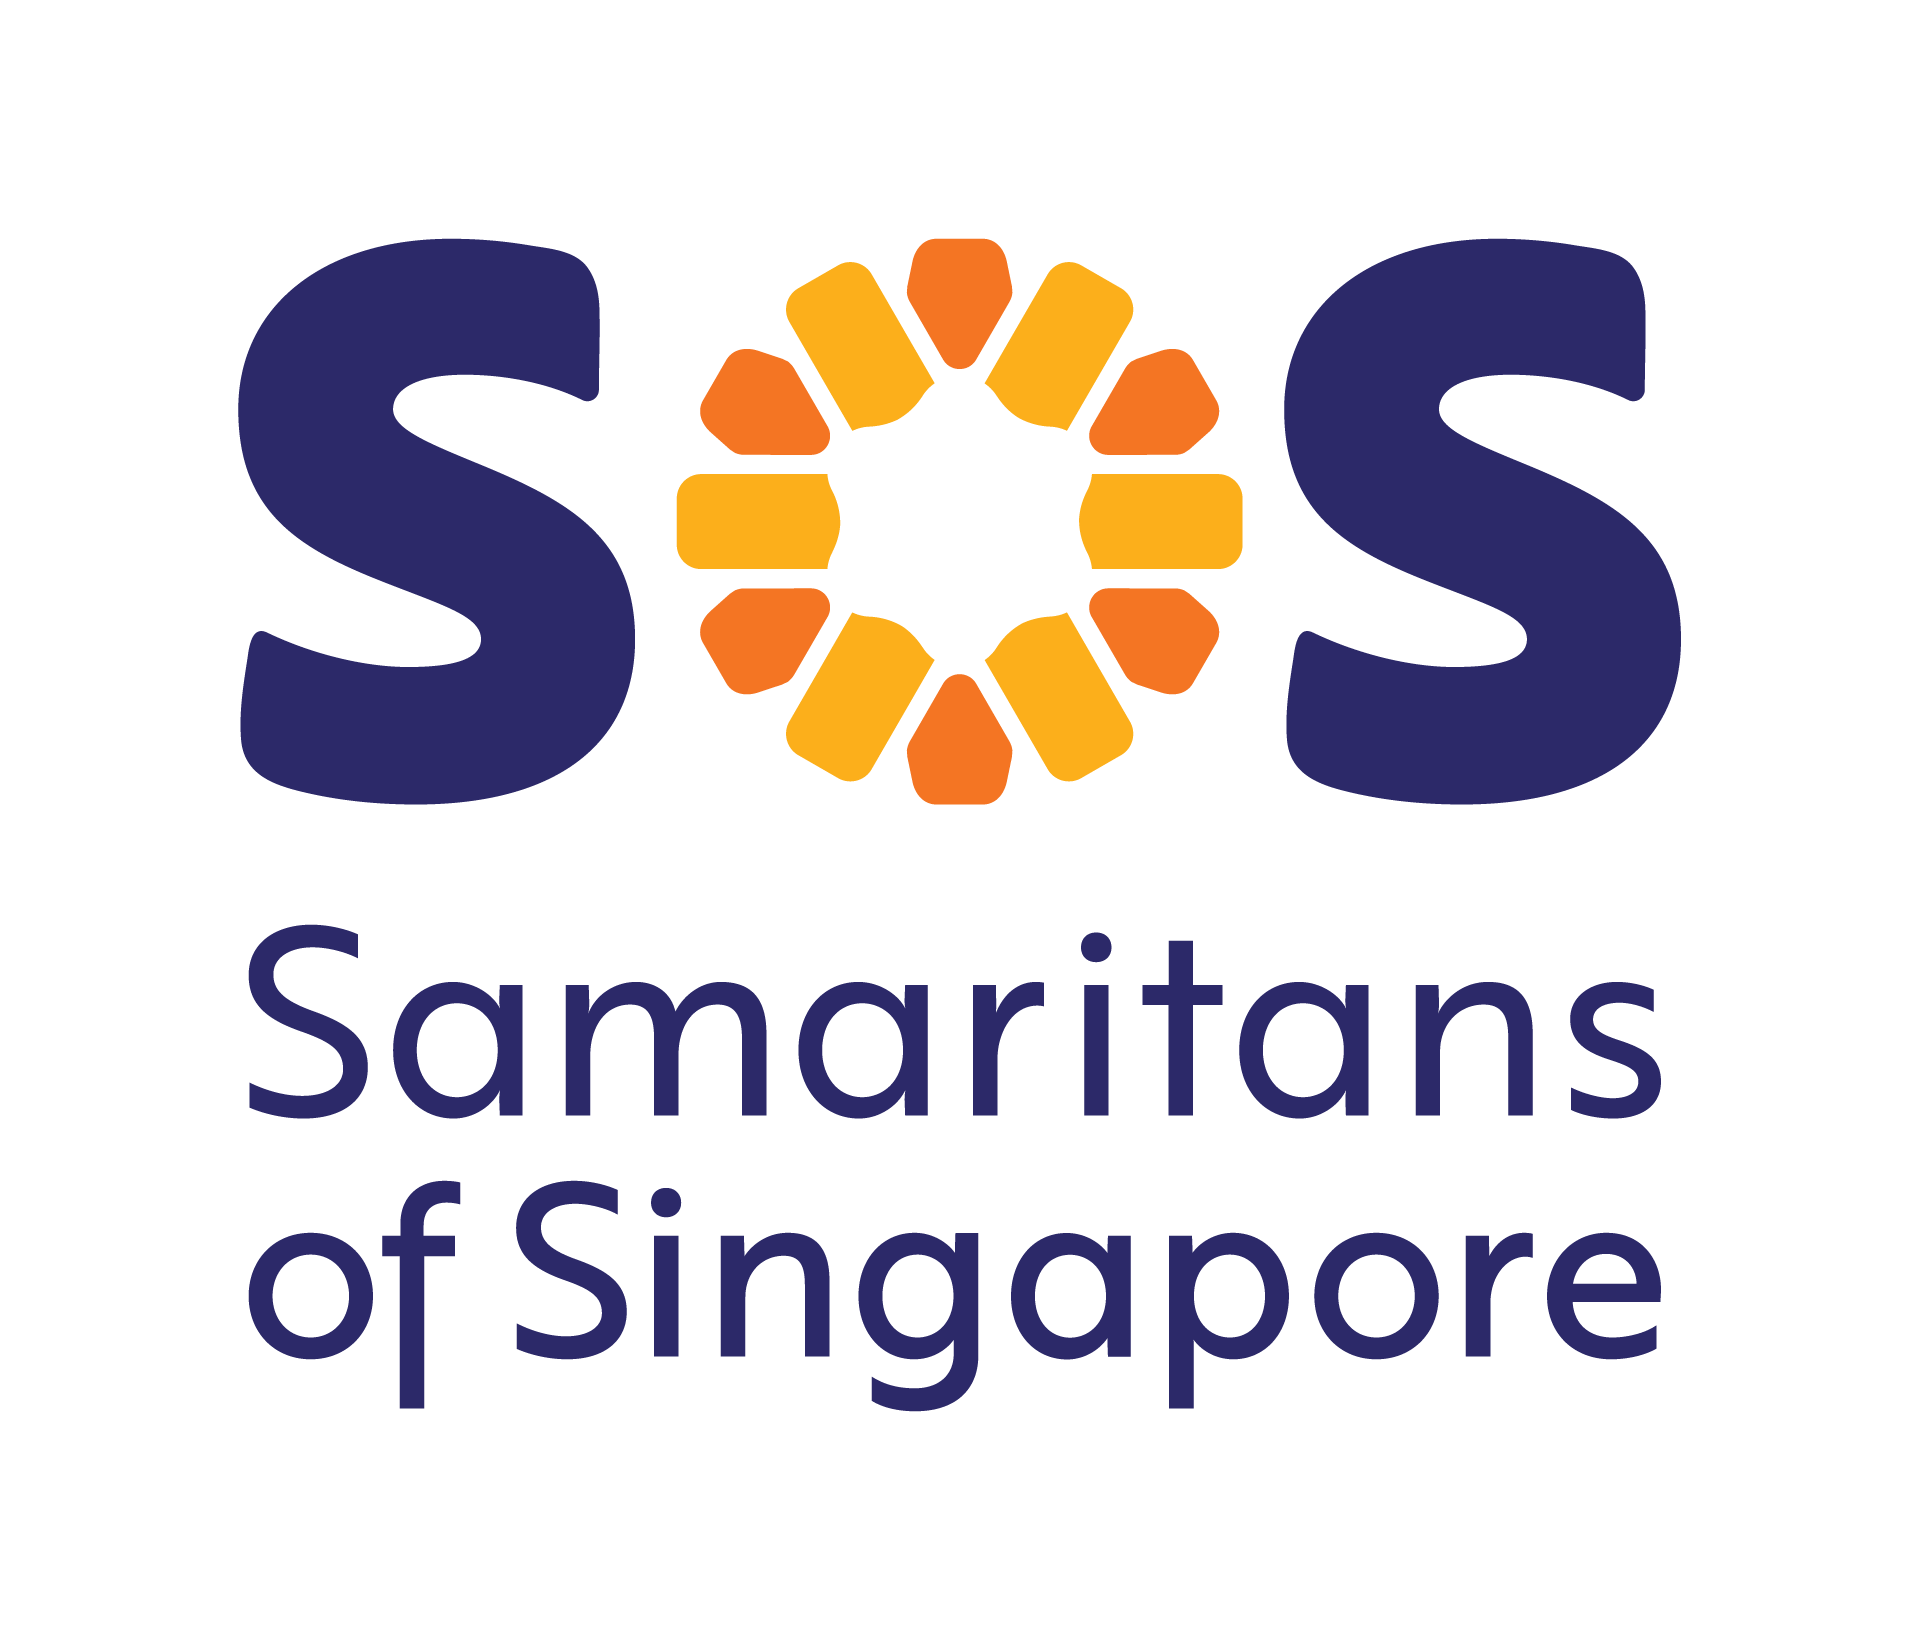 Samaritans of Singapore